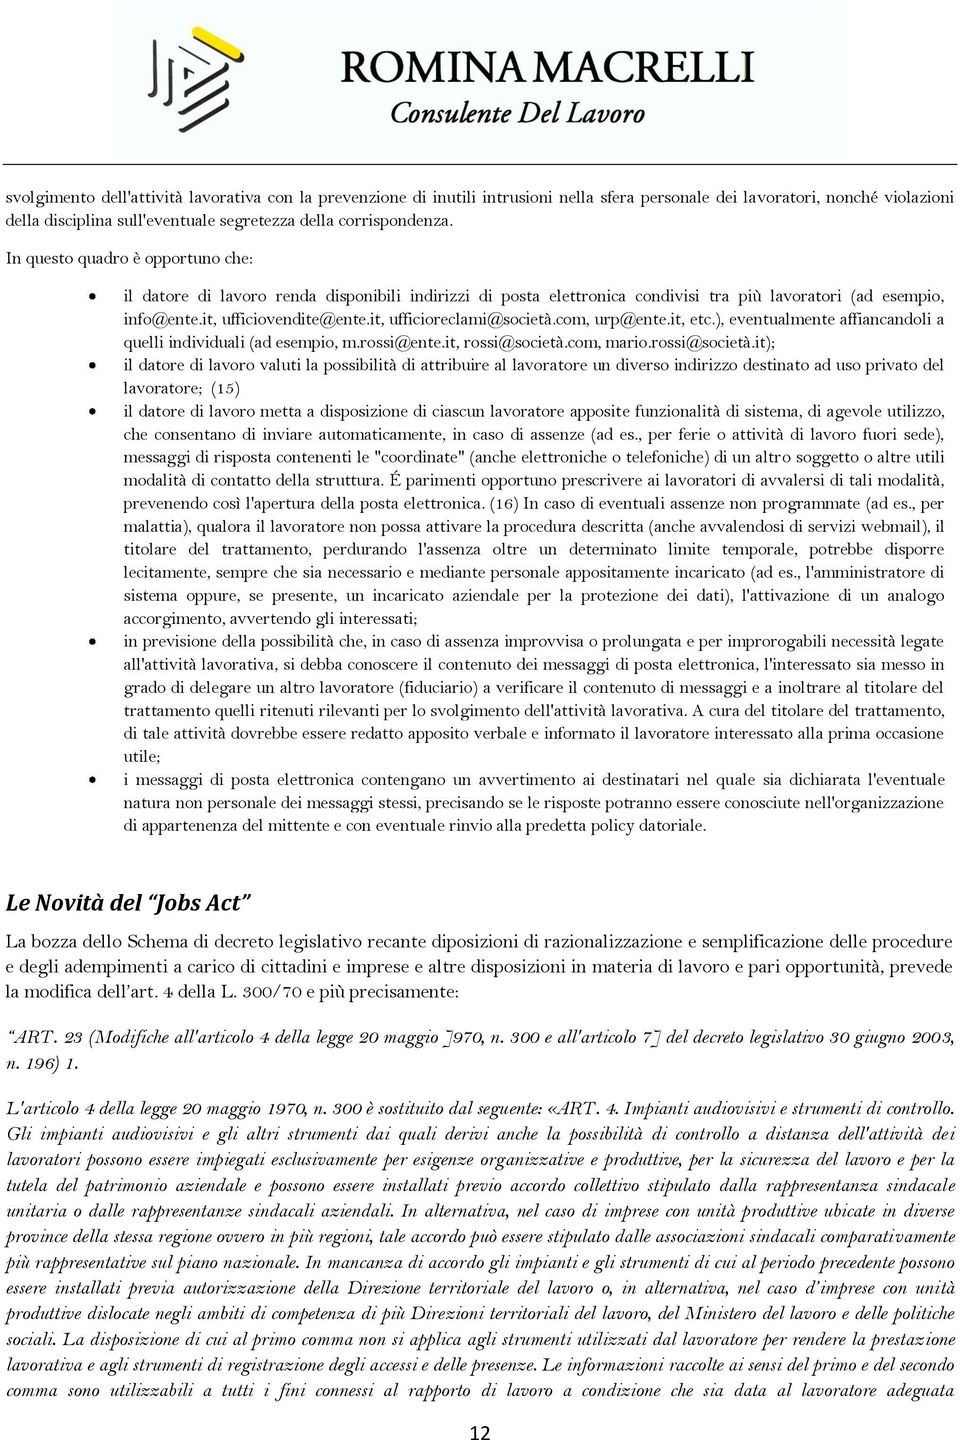 it, ufficioreclami@società.com, urp@ente.it, etc.), eventualmente affiancandoli a quelli individuali (ad esempio, m.rossi@ente.it, rossi@società.